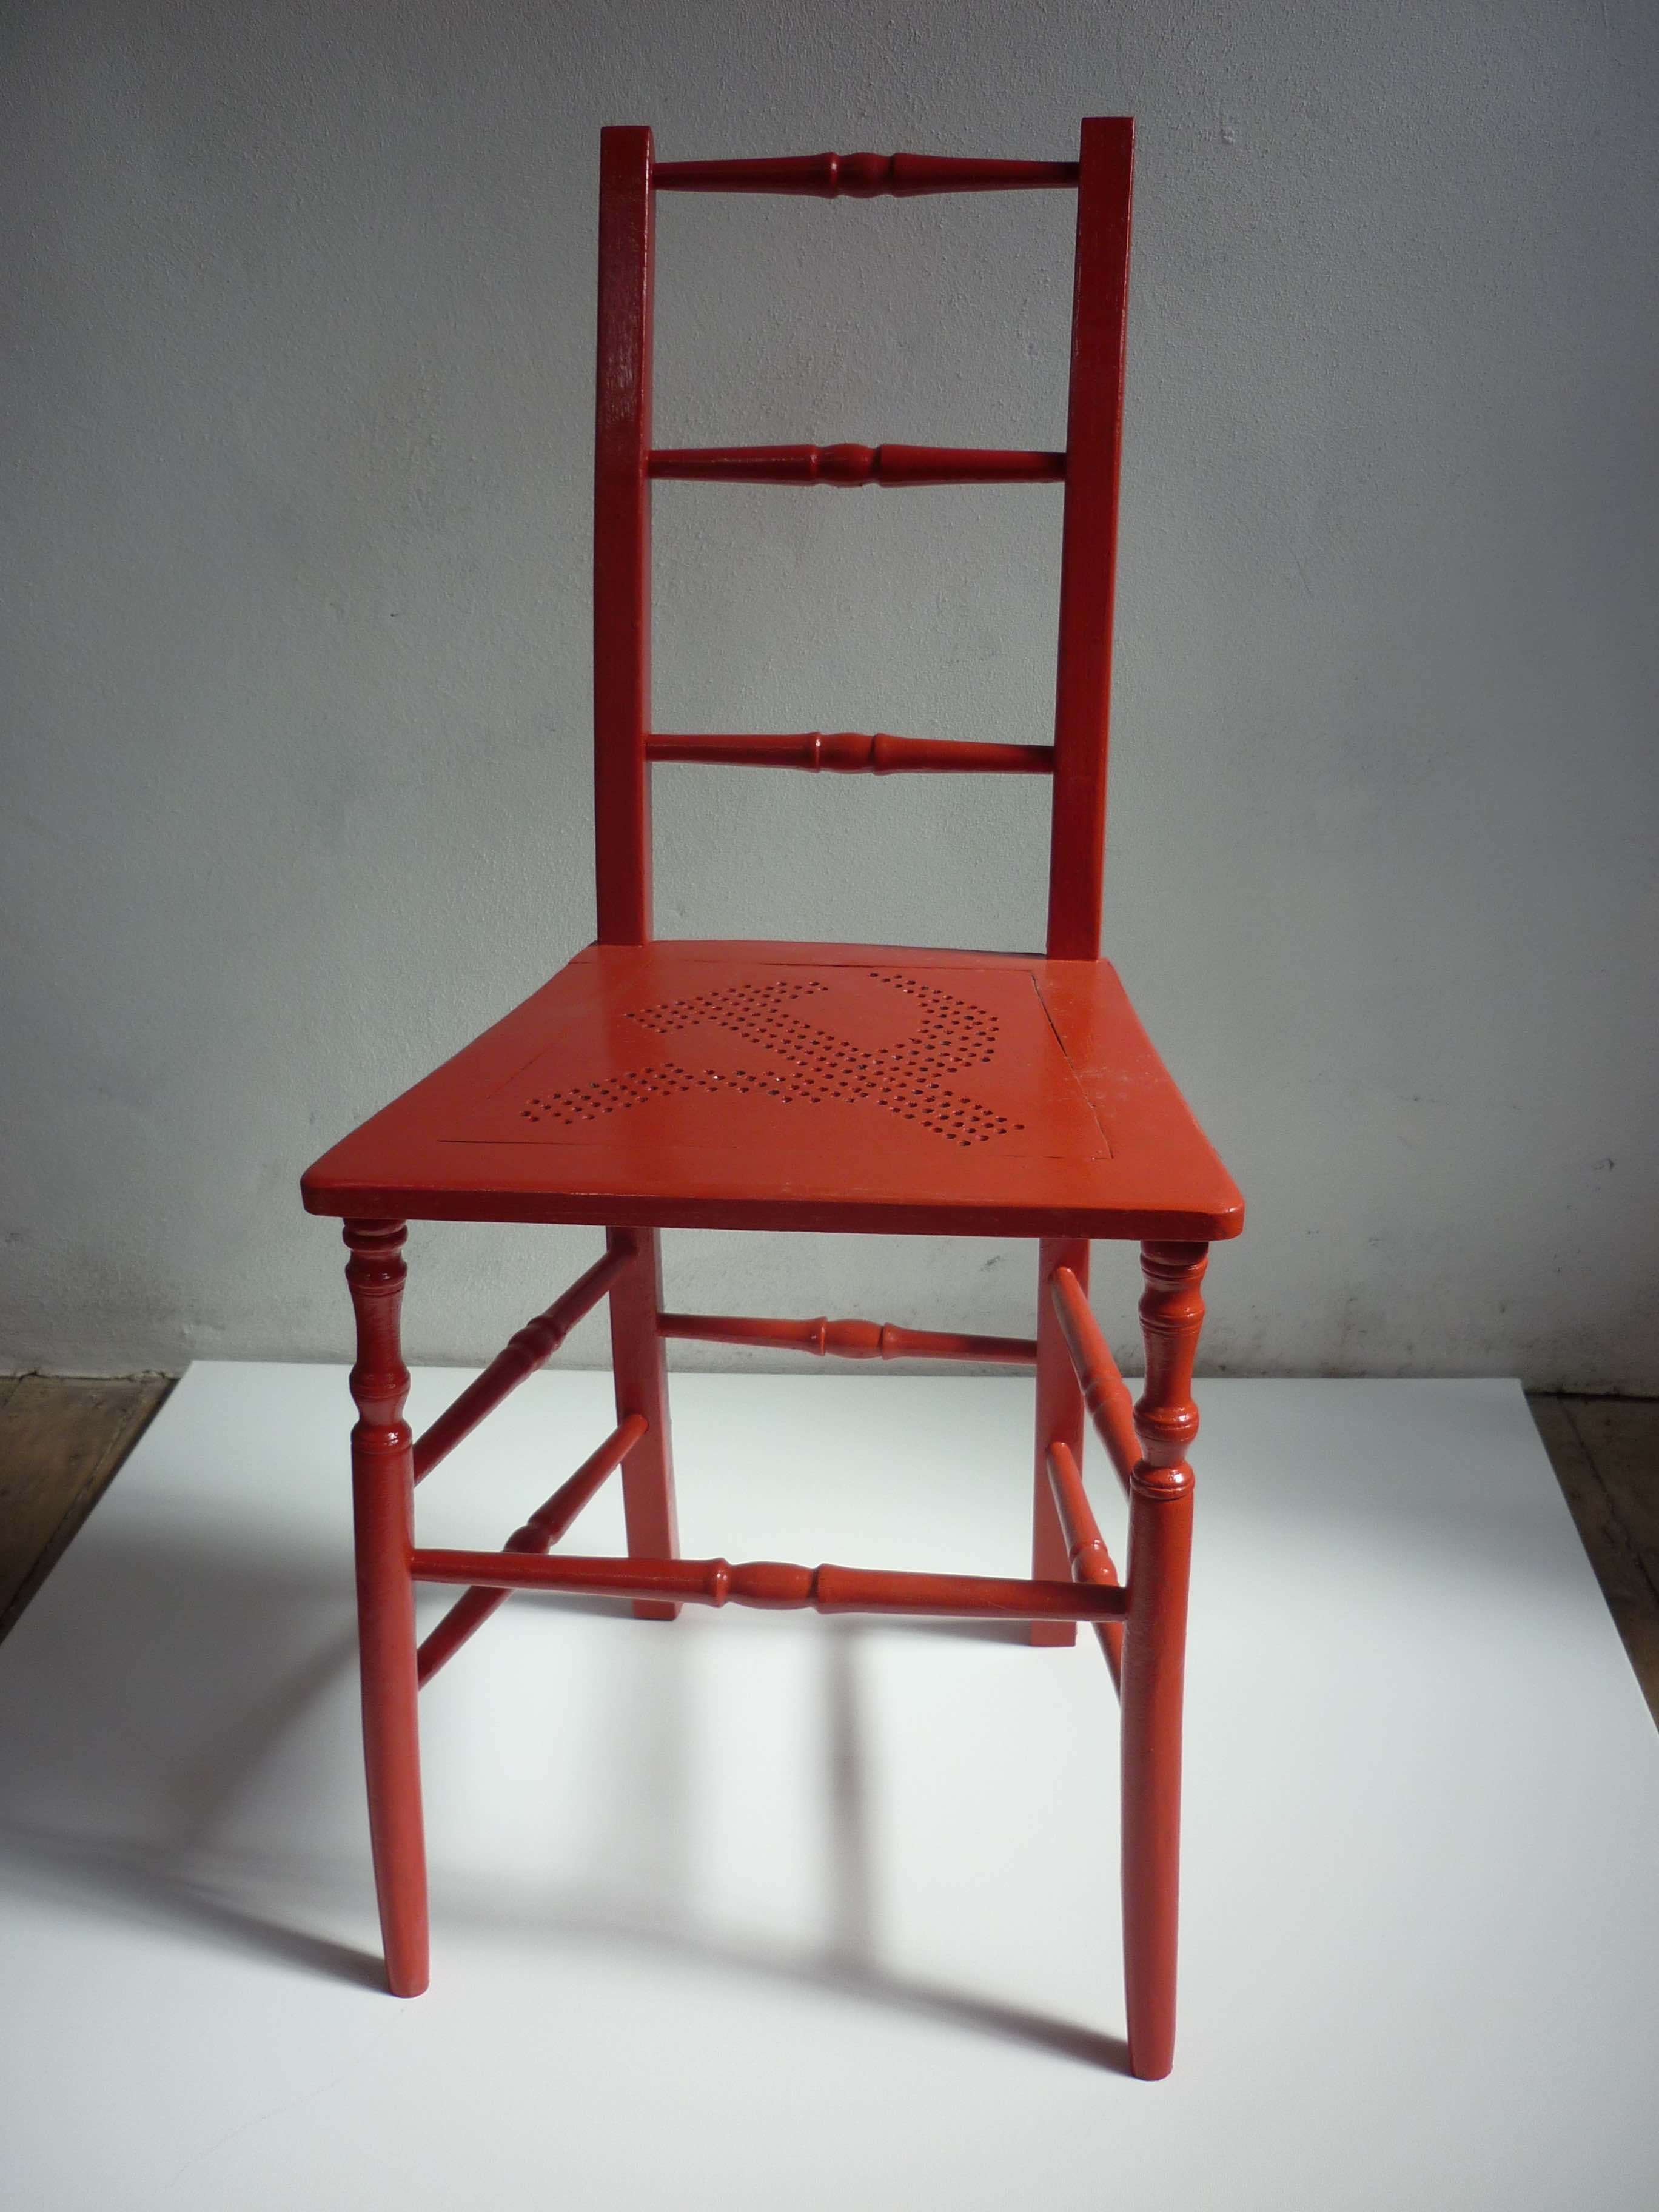 Uncle Joes Chair - Front View - Jeff Perks